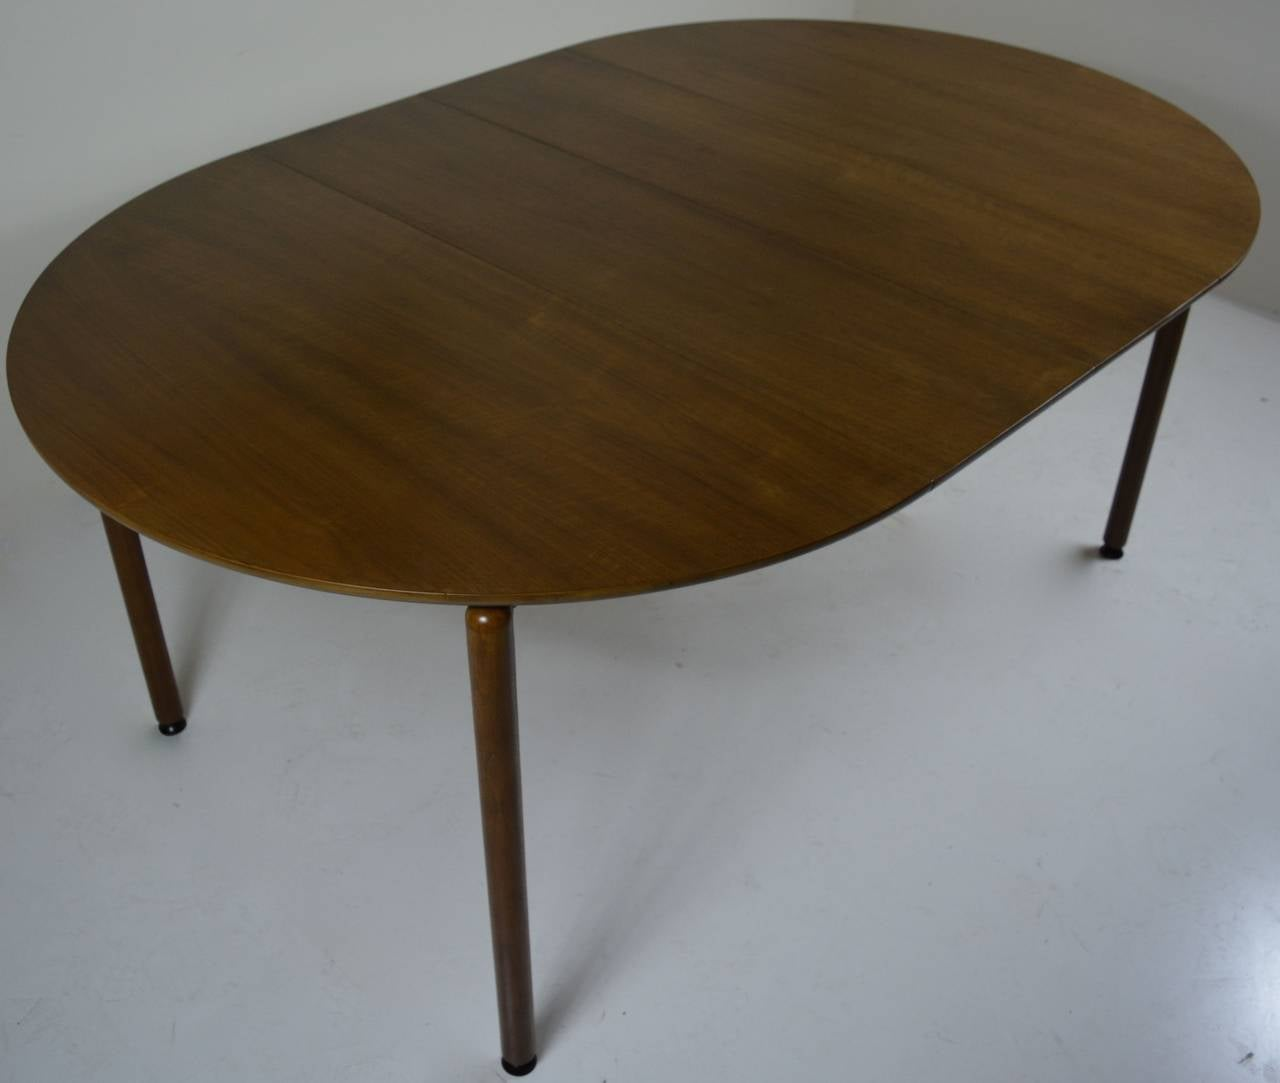 Round dining table by greta grossman two leaves for sale for Dining room table 2 leaves